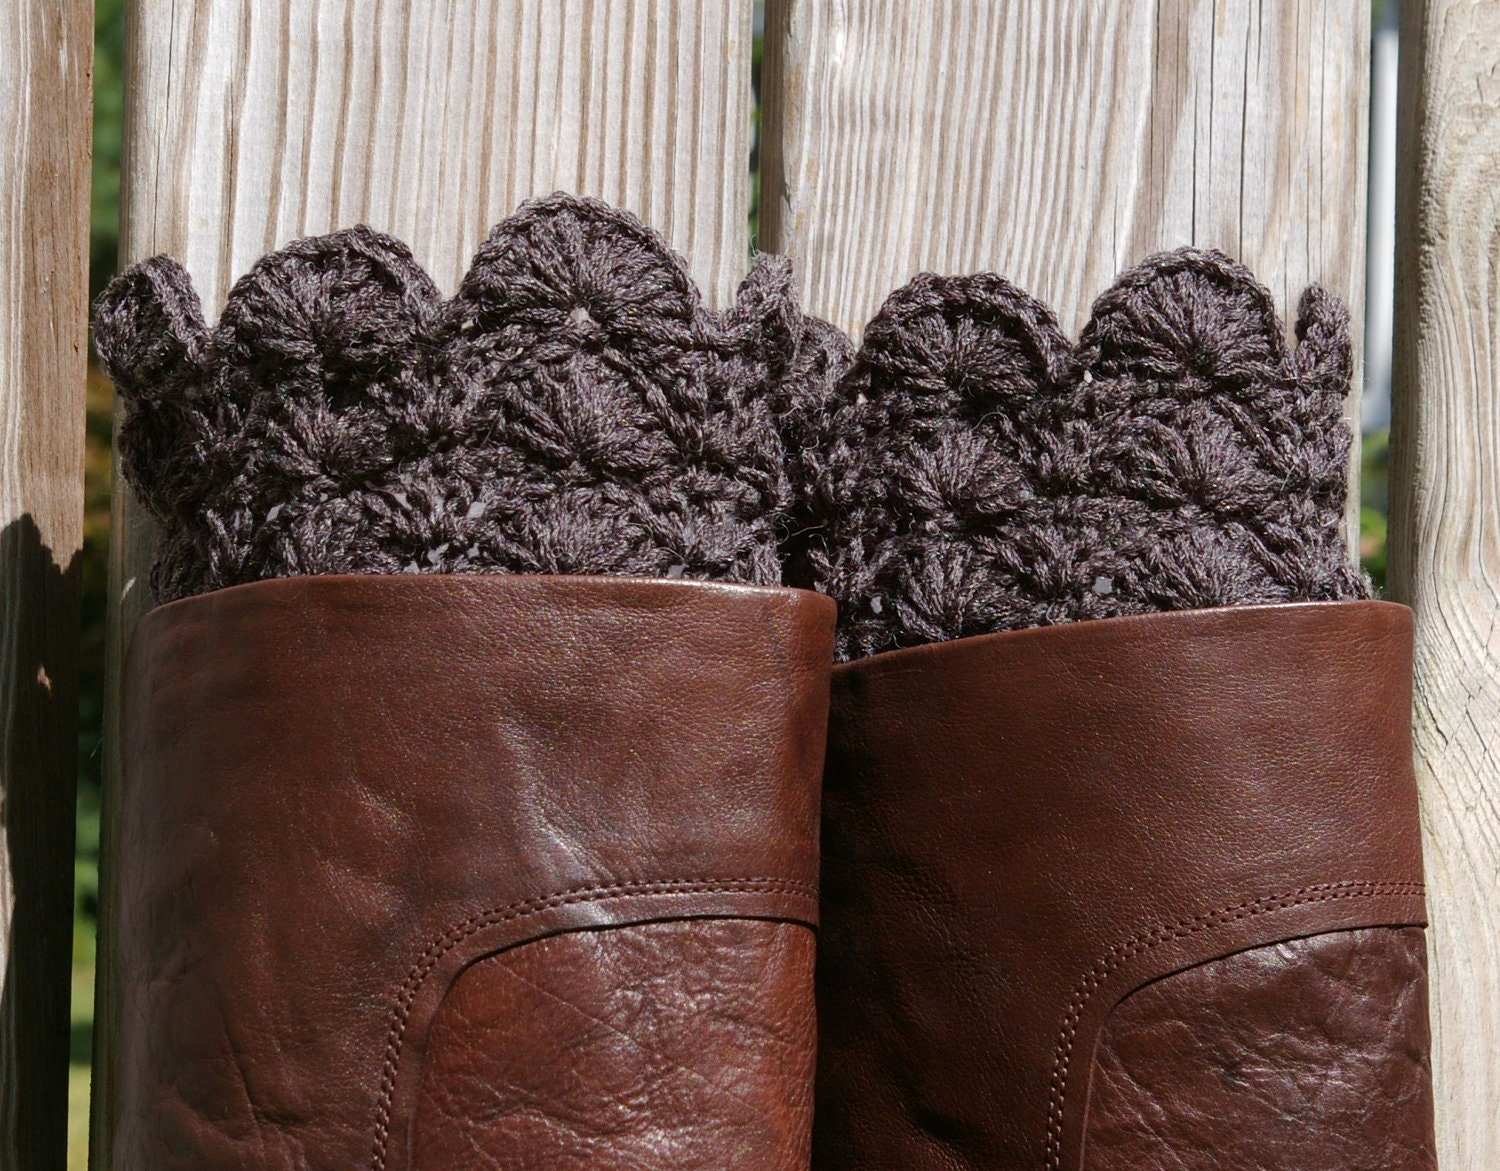 Free crochet patterns boot toppers dancox for crochet boot cuffs in charcoal grey gray boot toppers boot free crochet patterns bankloansurffo Images